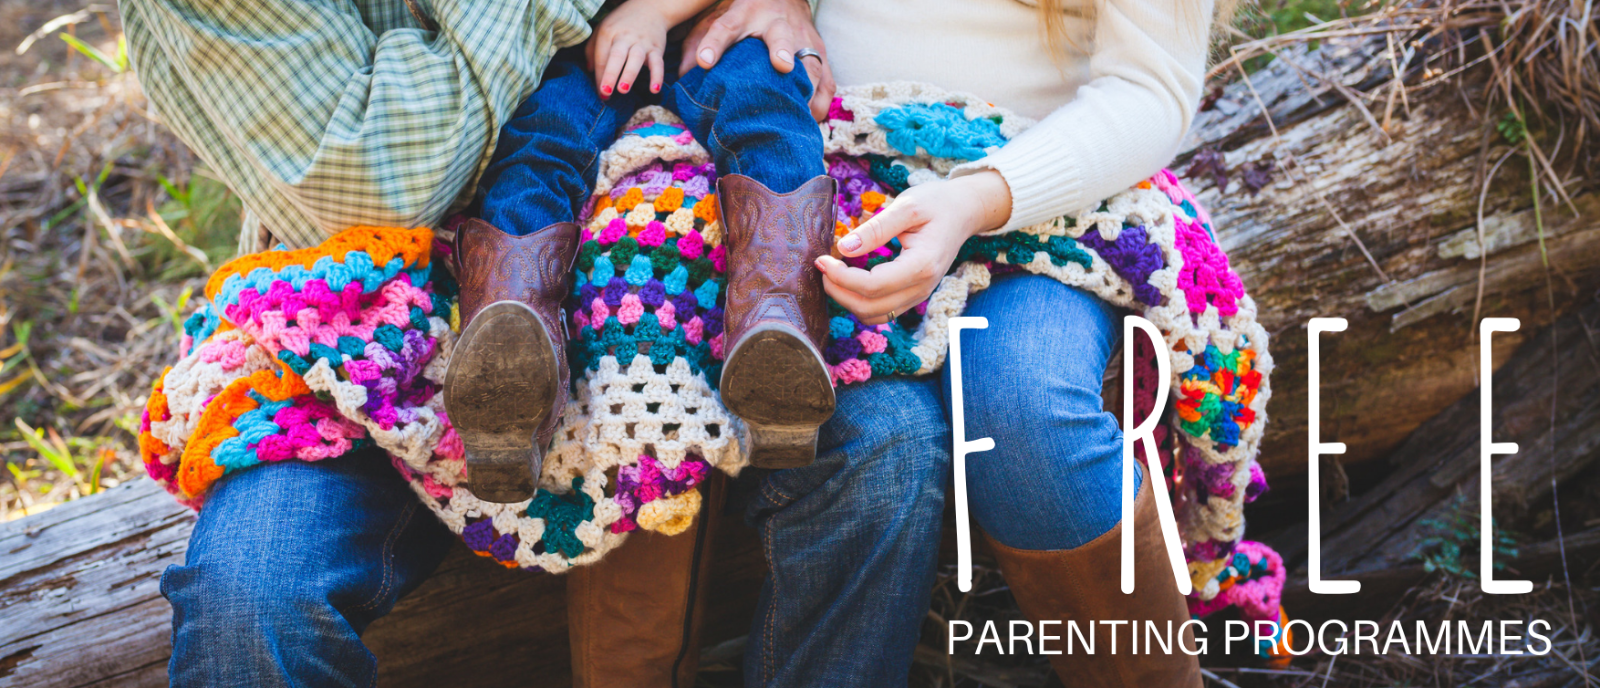 Click here for free parenting programmes